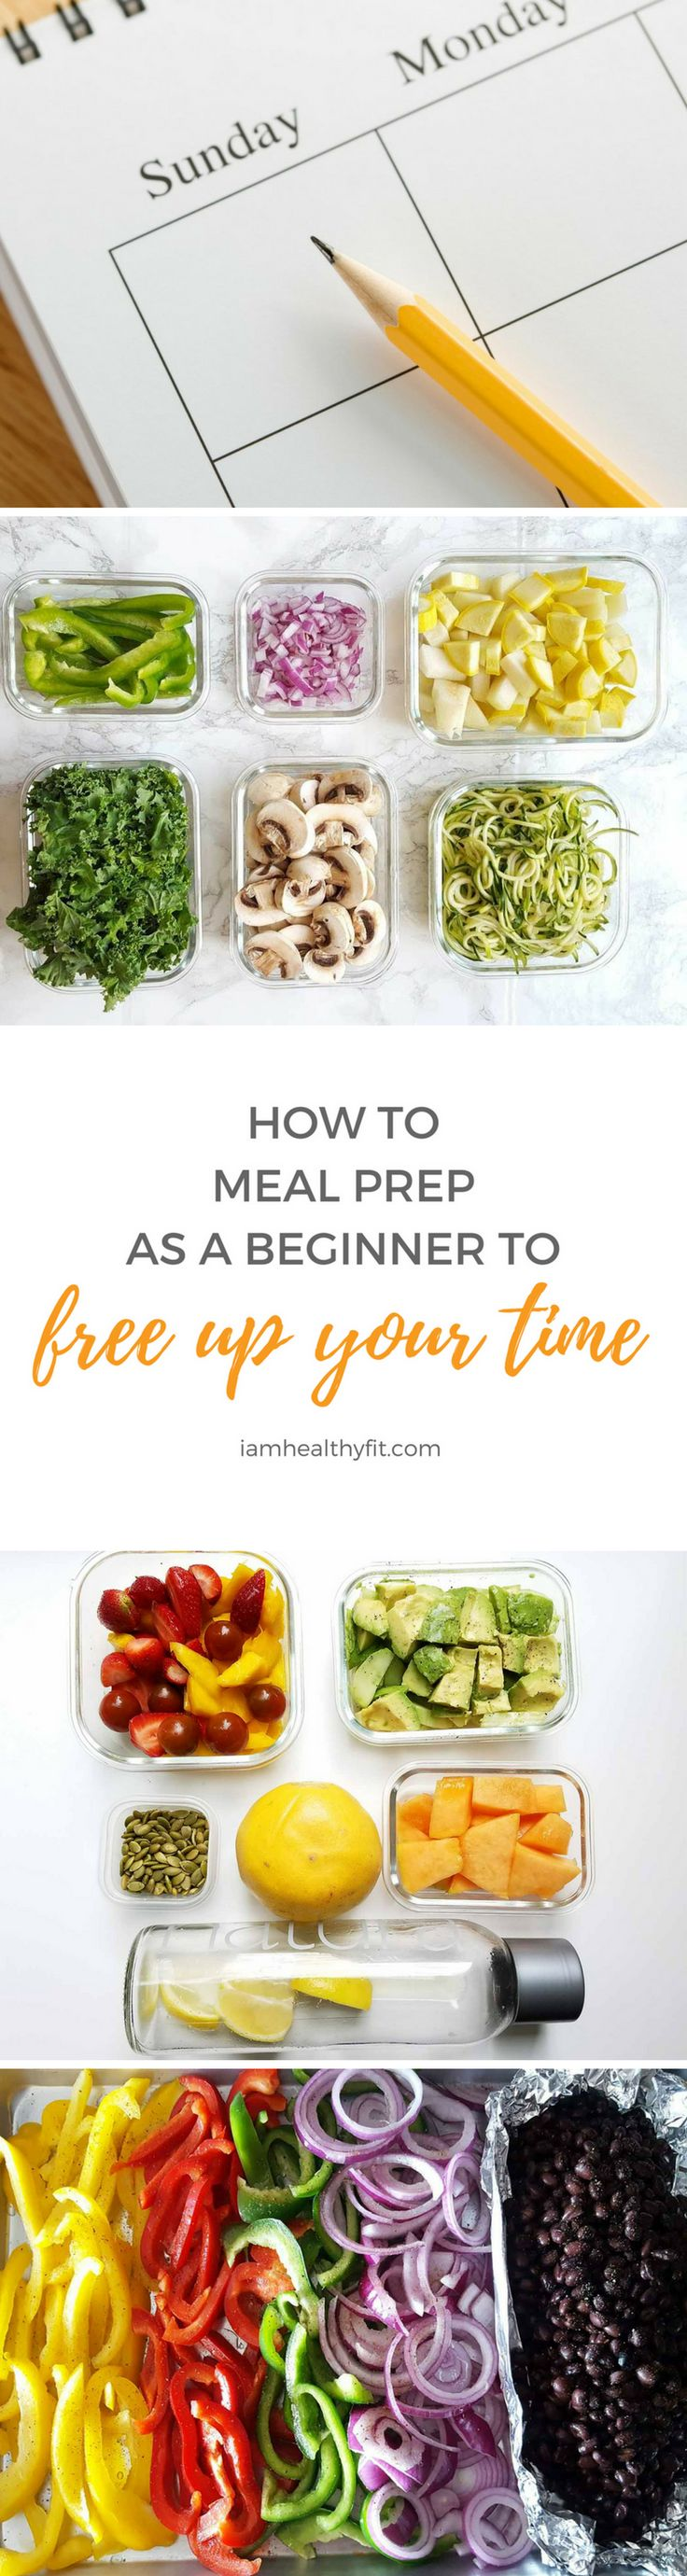 Meal prepping is an awesome tool, and it has helped me keep 25 pounds off for almost a decade. clean eating / meal prep / health / food / women / black women